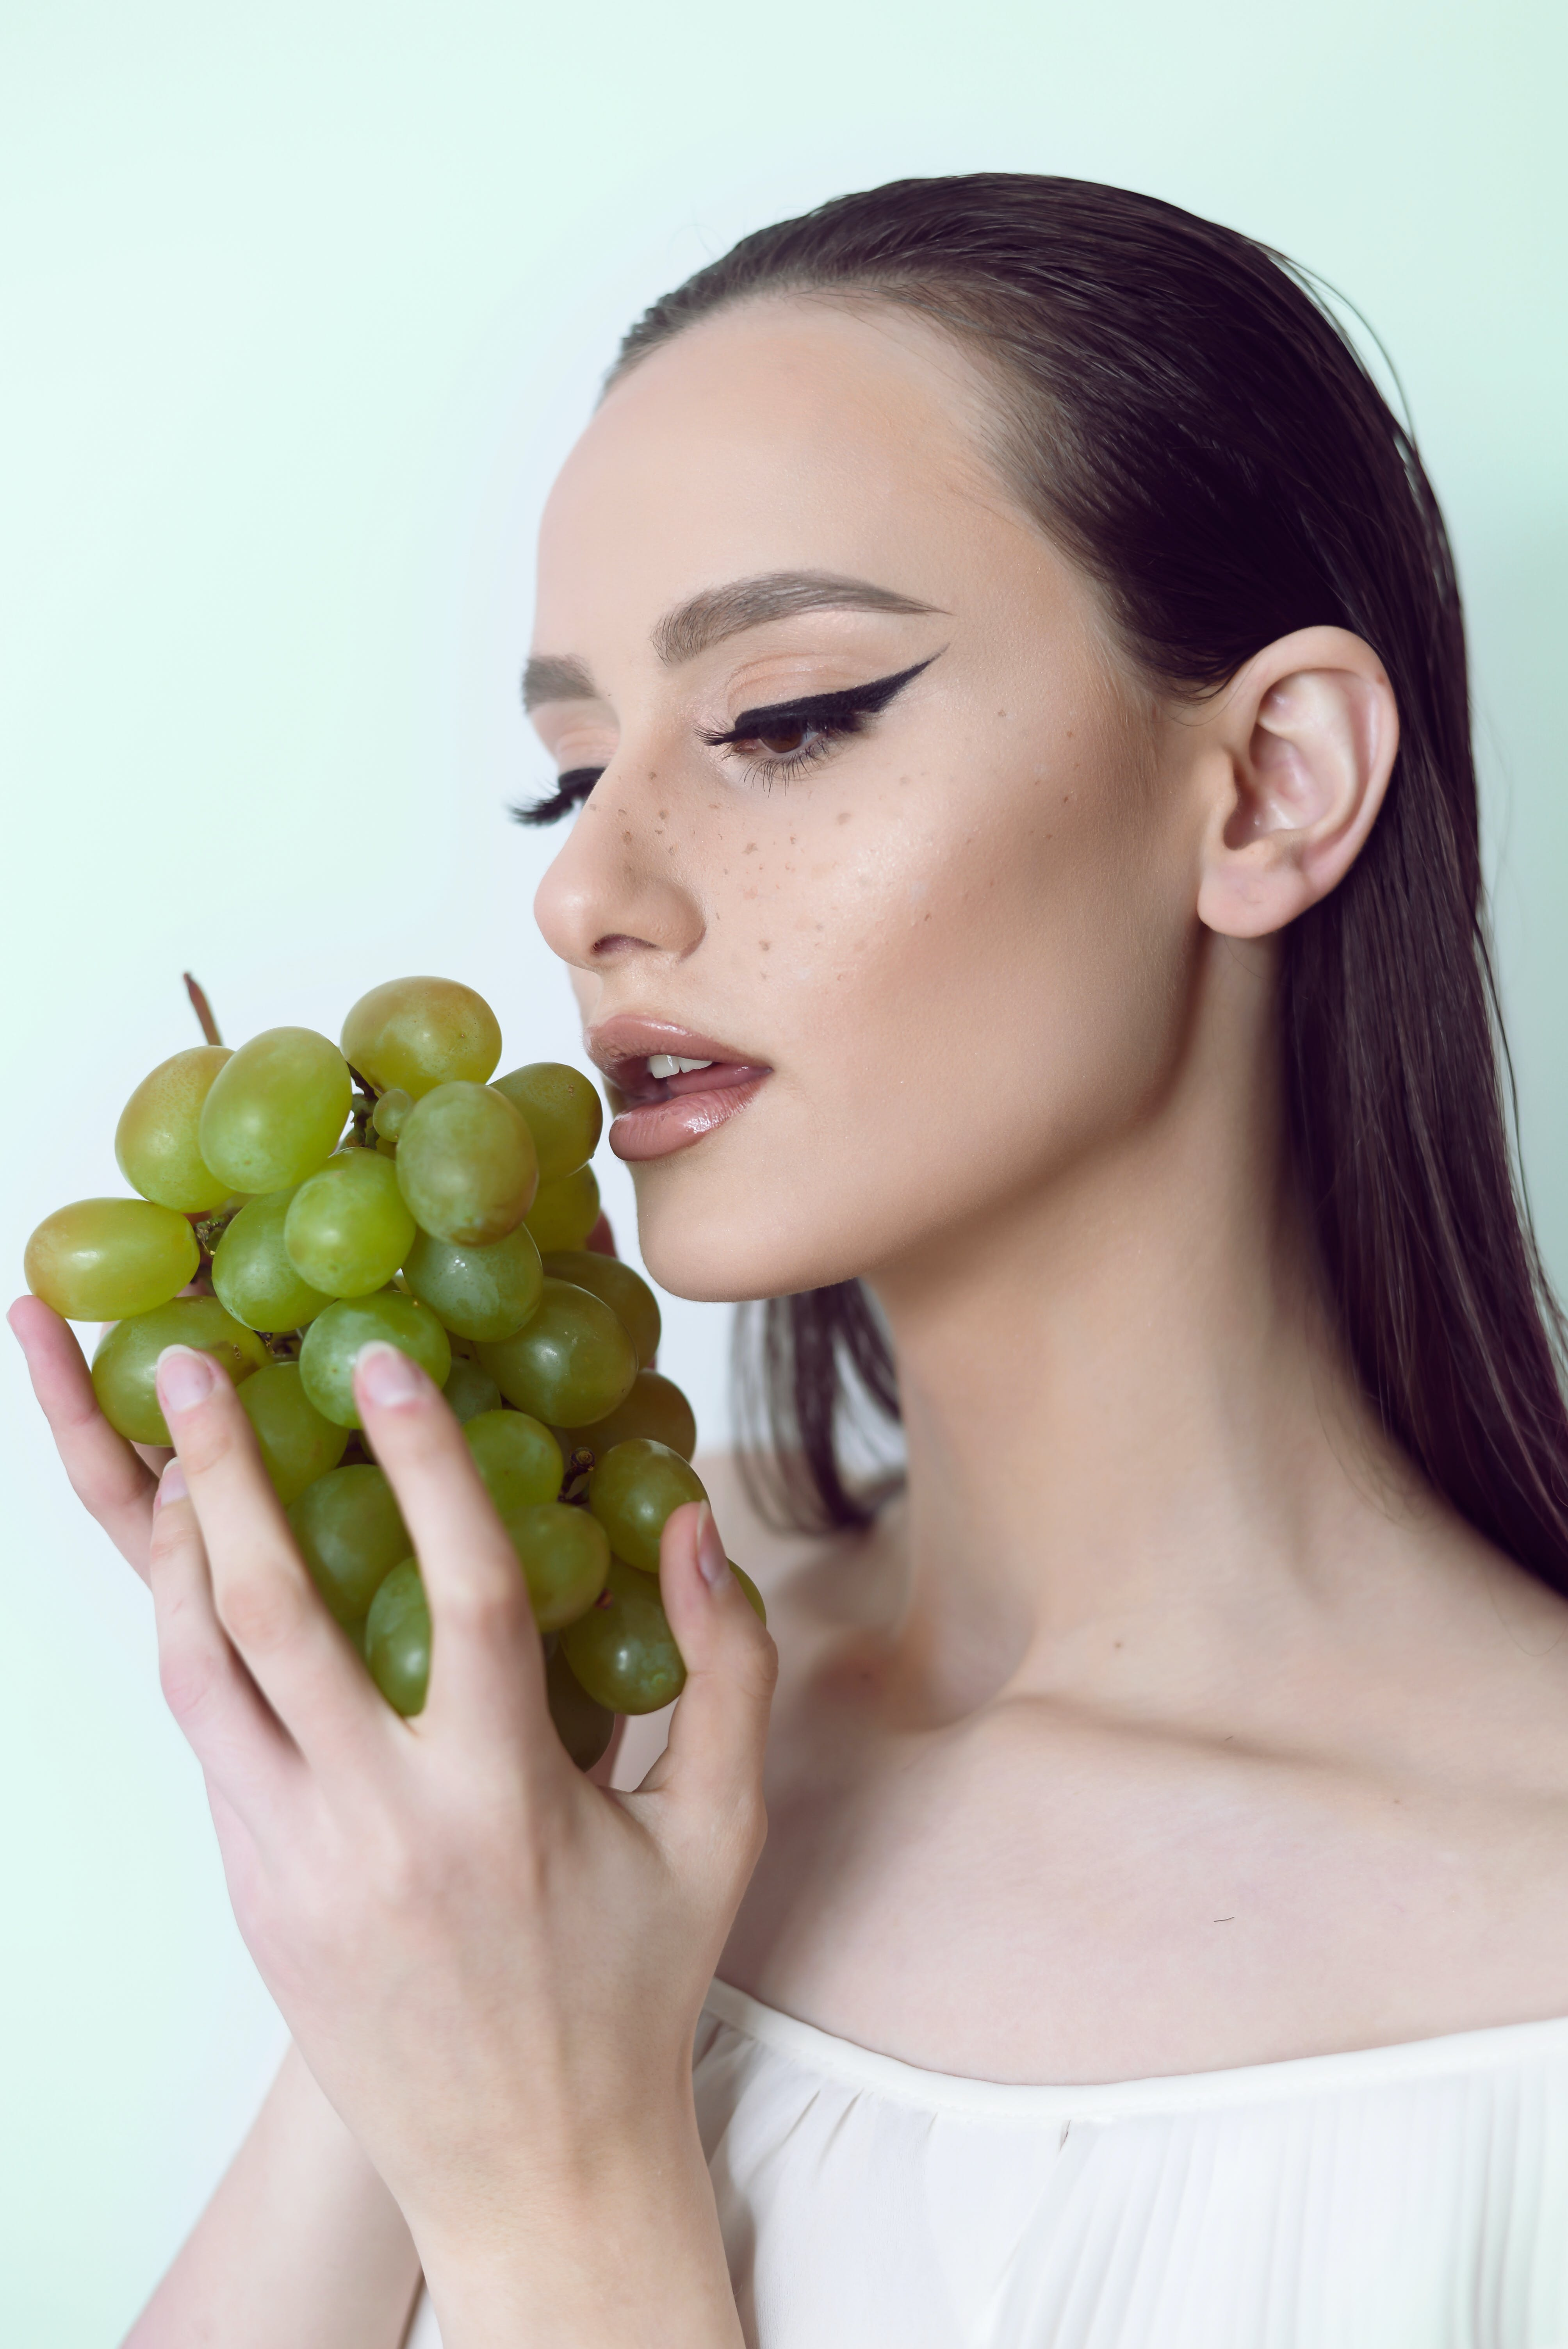 Photo of Woman About to Eat White Grapes